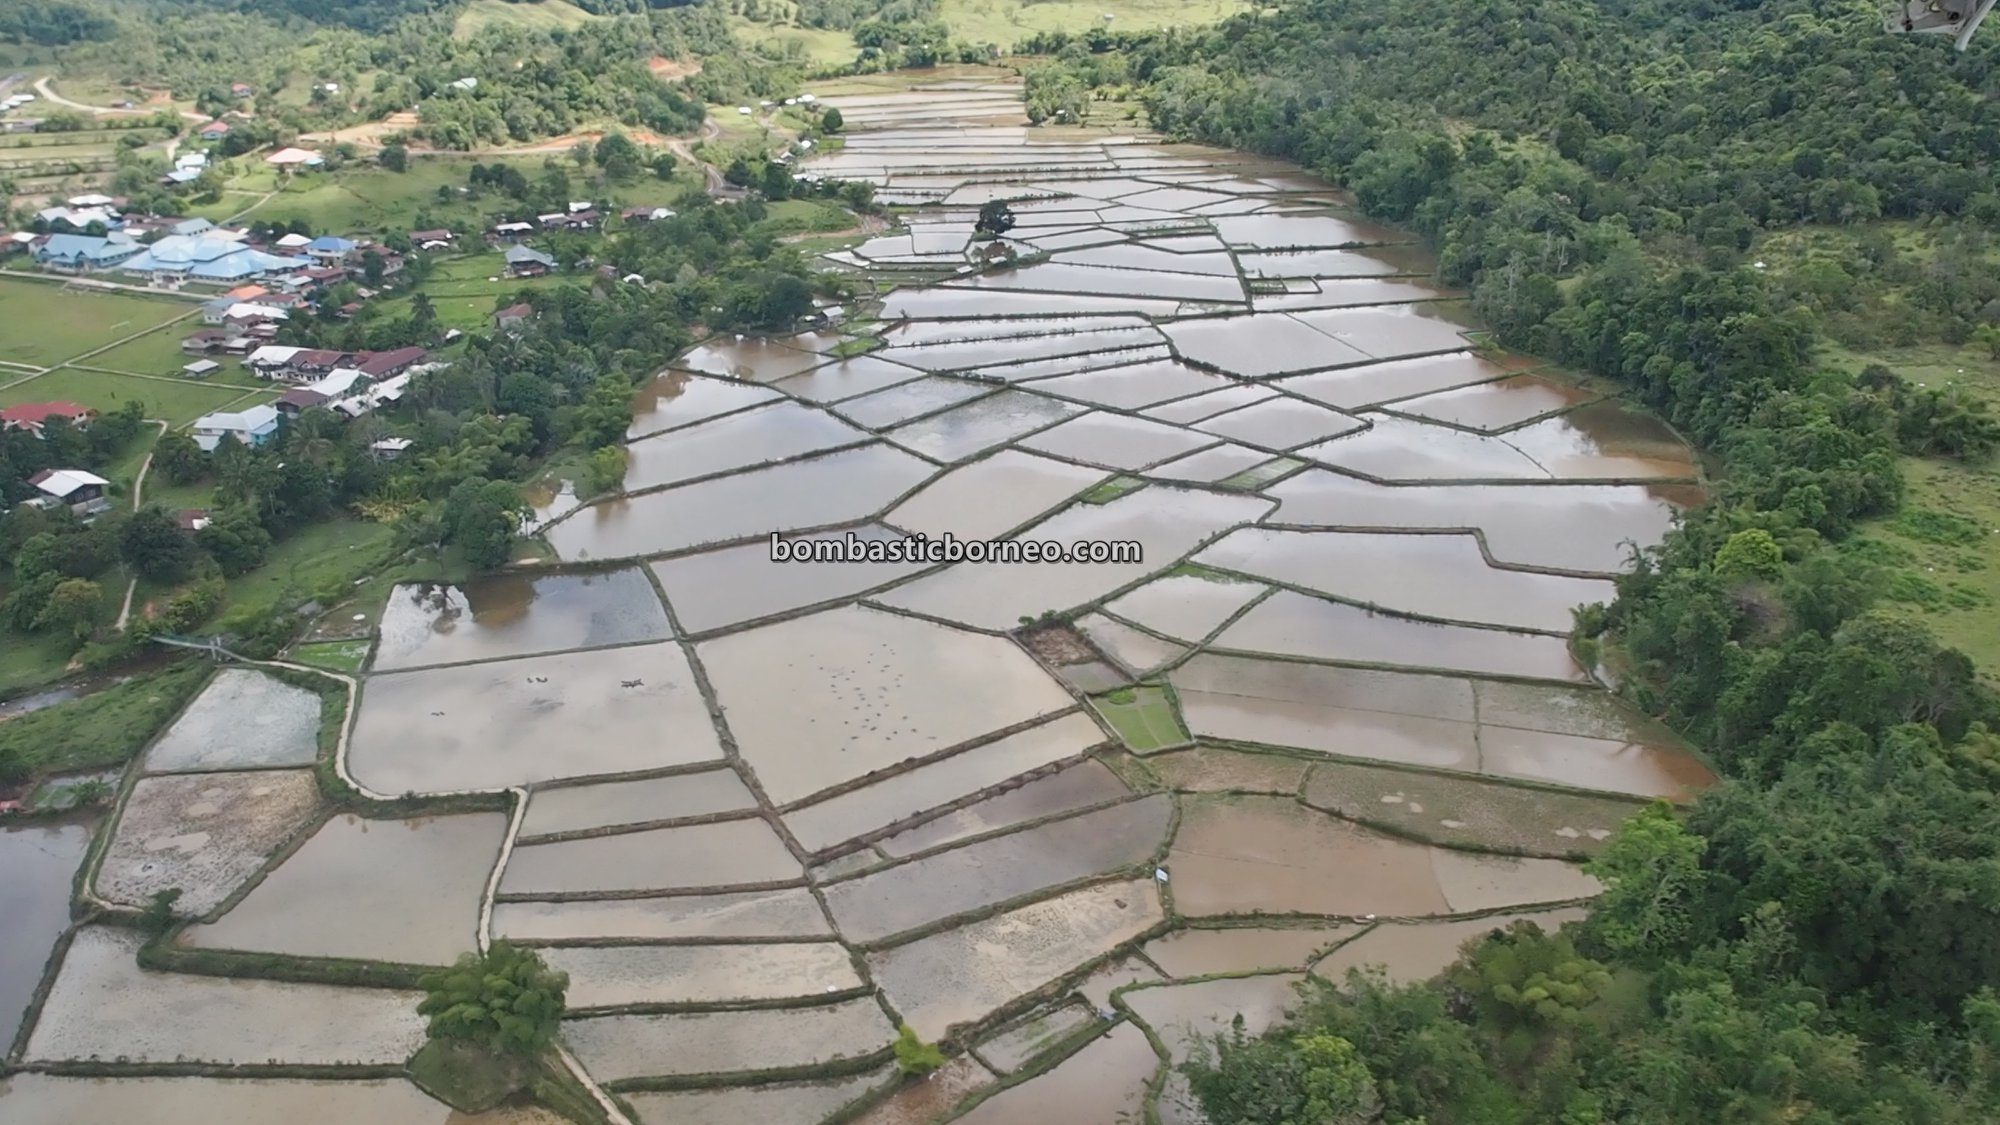 paddy fields, Bakelalan Highlands, adventure, authentic, traditional, backpackers, destination, exploration, Interior village, native, Malaysia, Sarawak, tourist attraction, travel guide, Borneo,